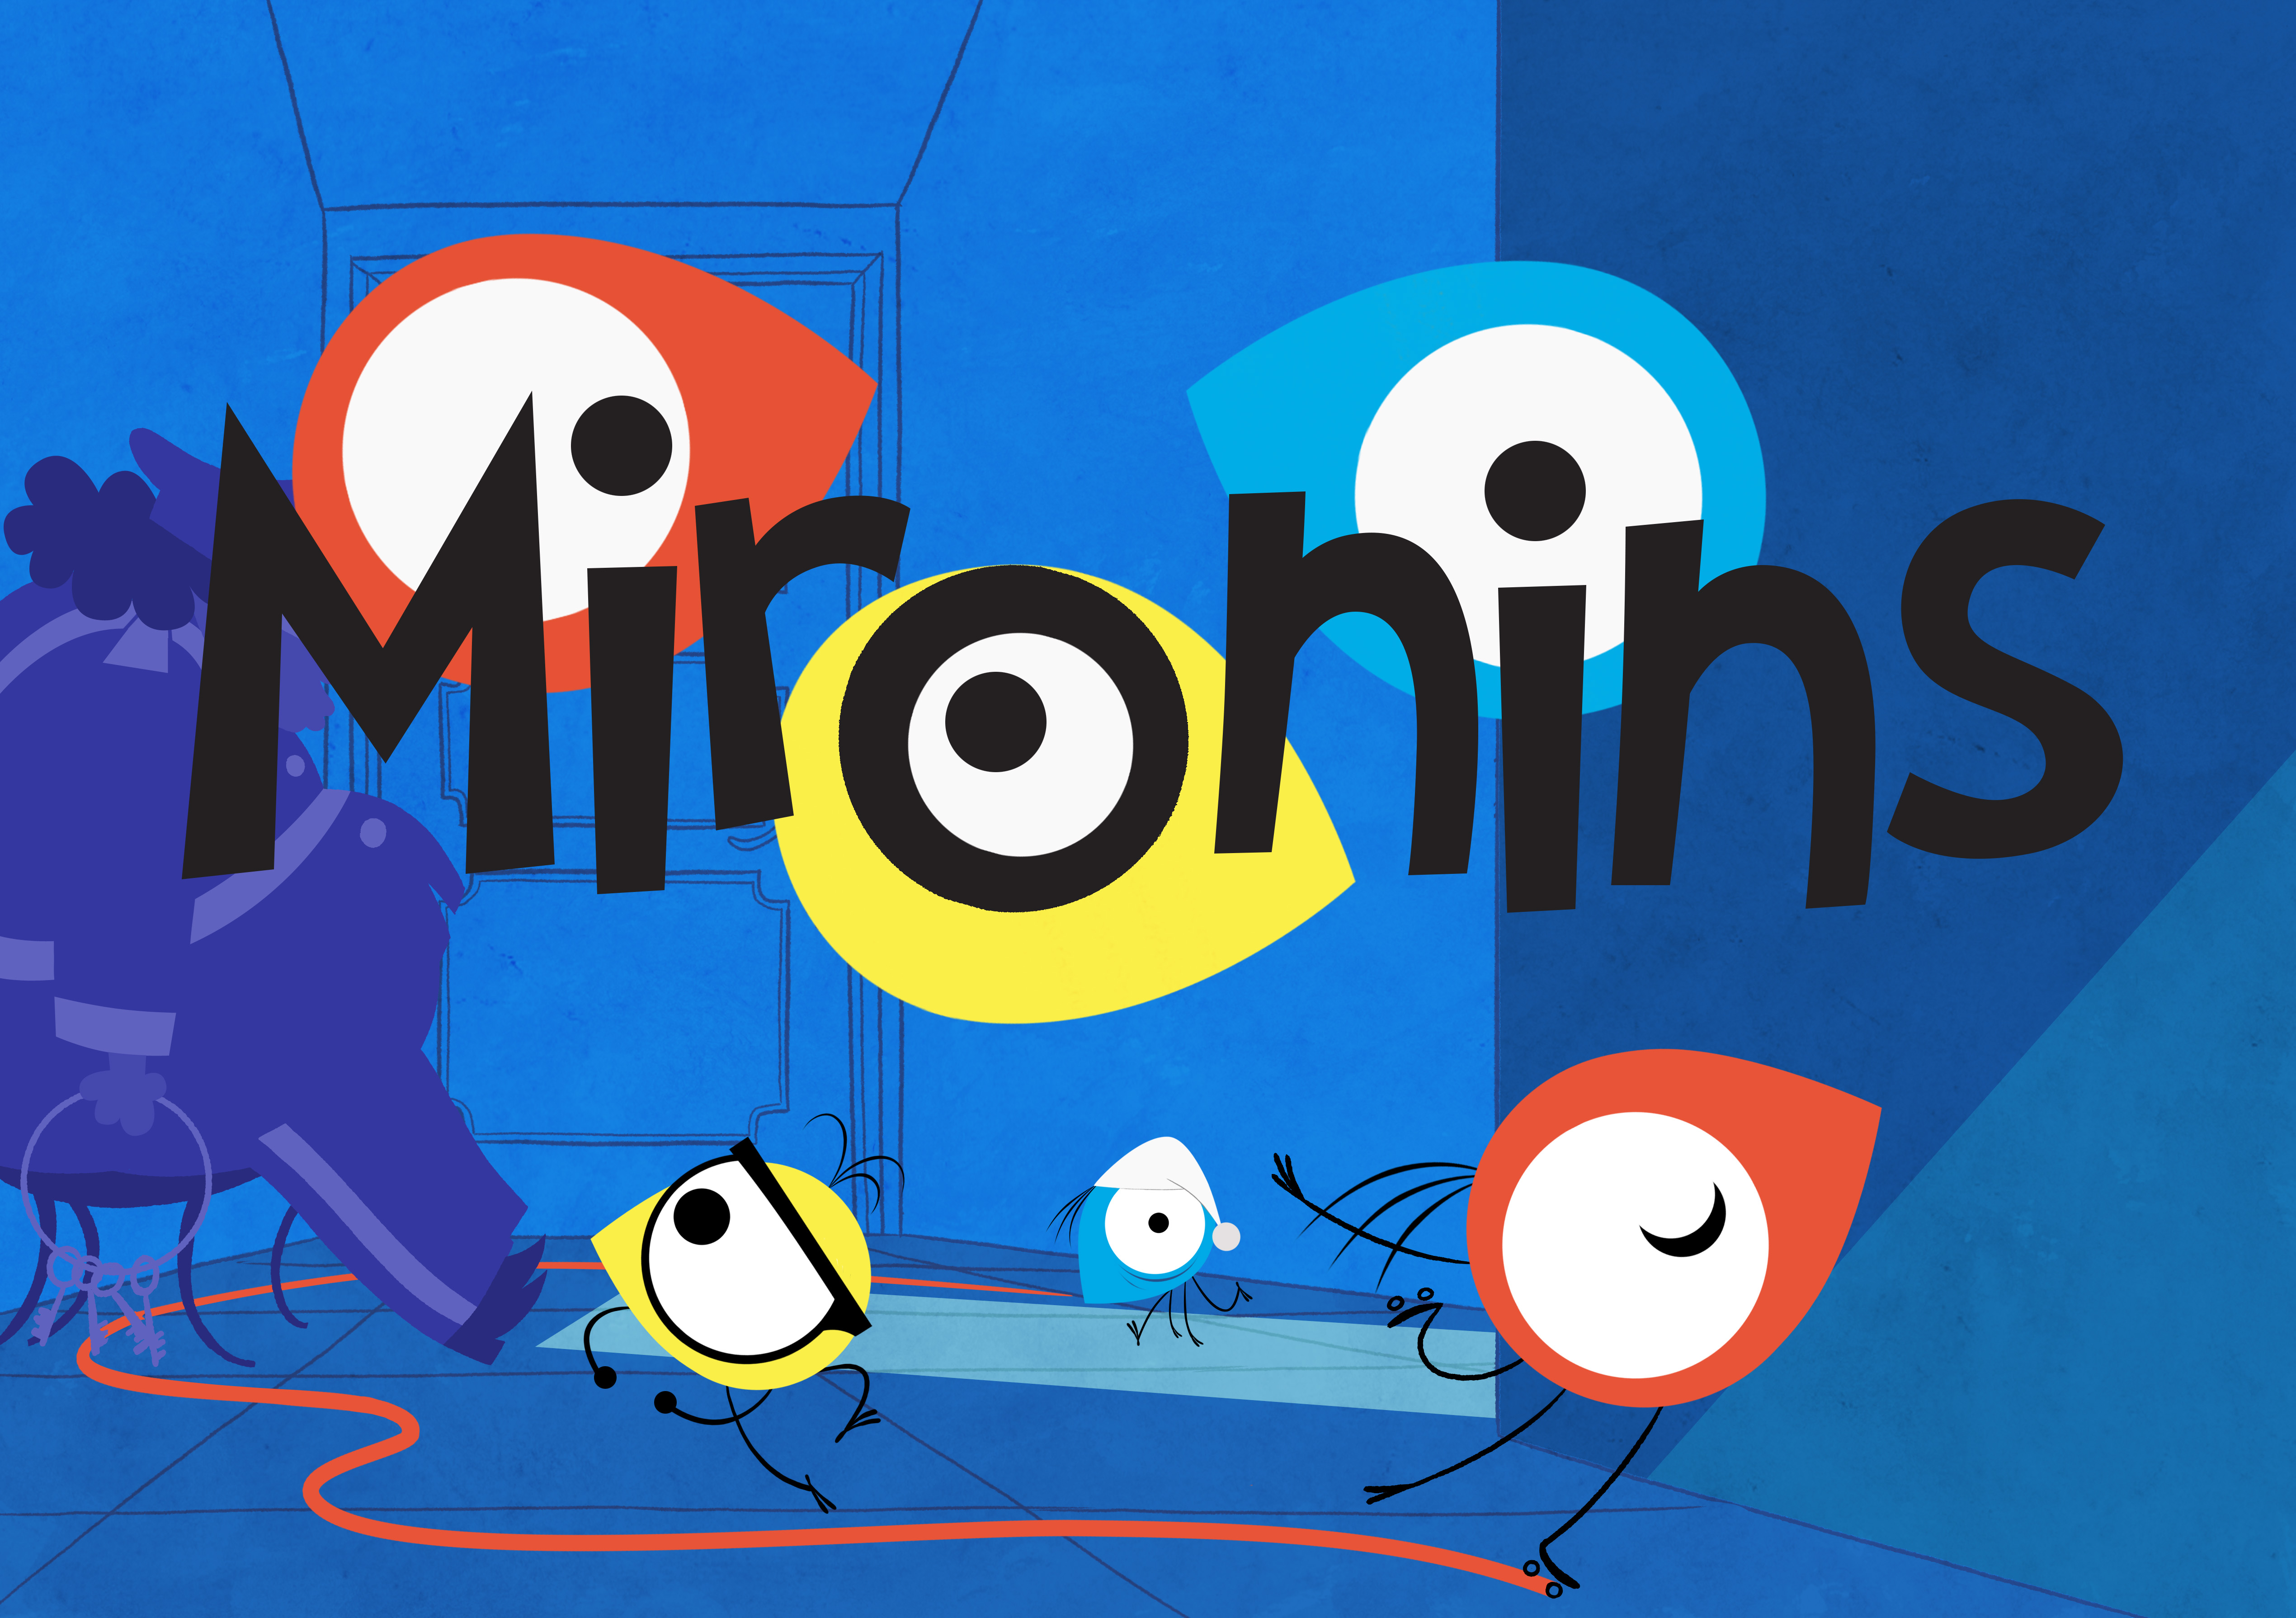 A book for playing and learning with Joan Mir/ó Mironins